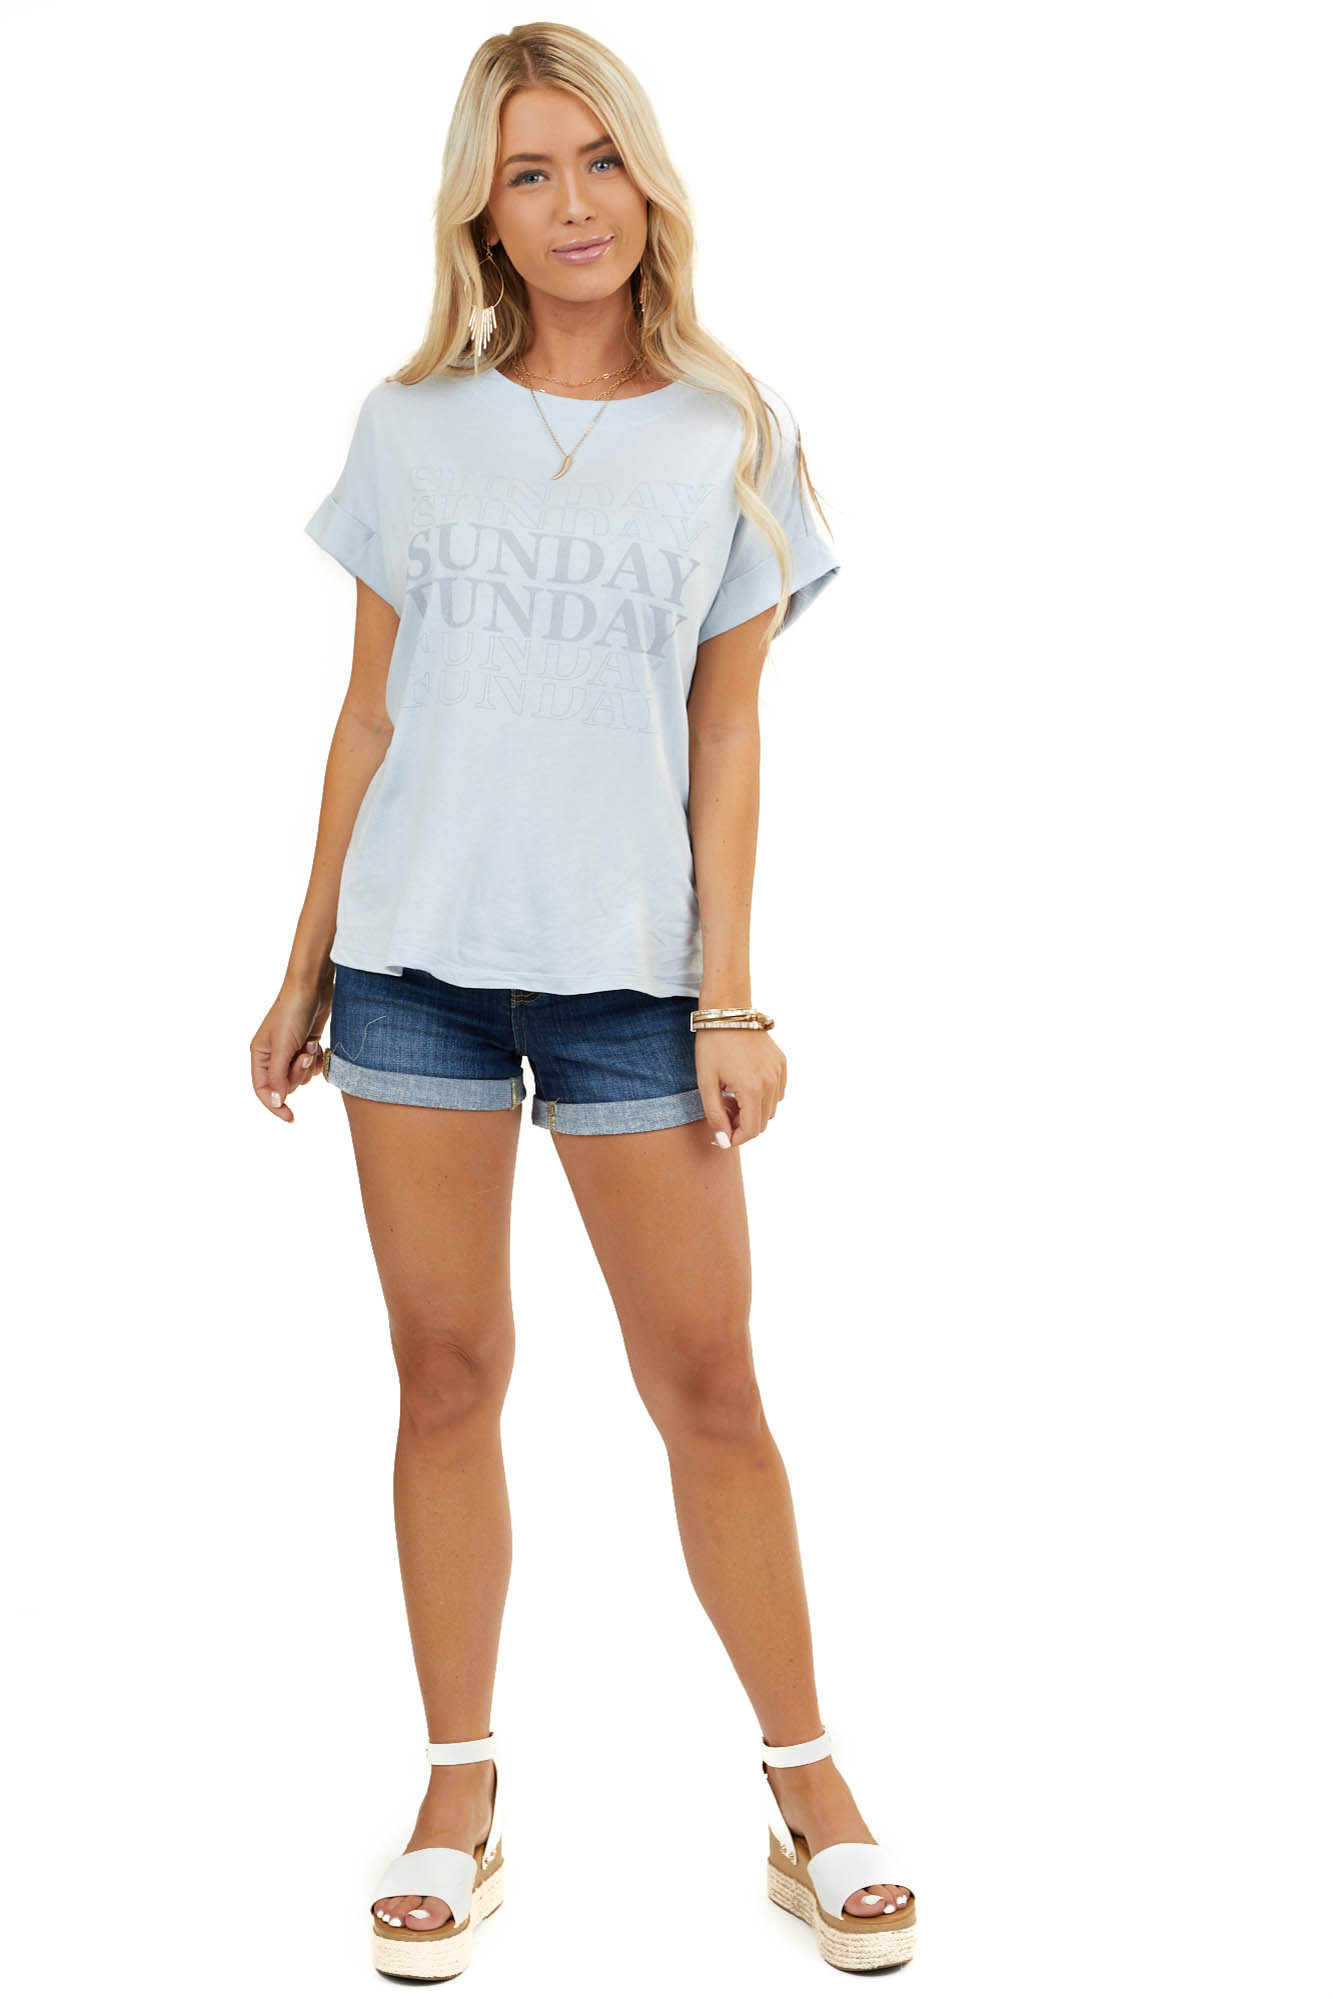 Pale Blue 'Sunday Funday' Graphic Tee With Front Knot